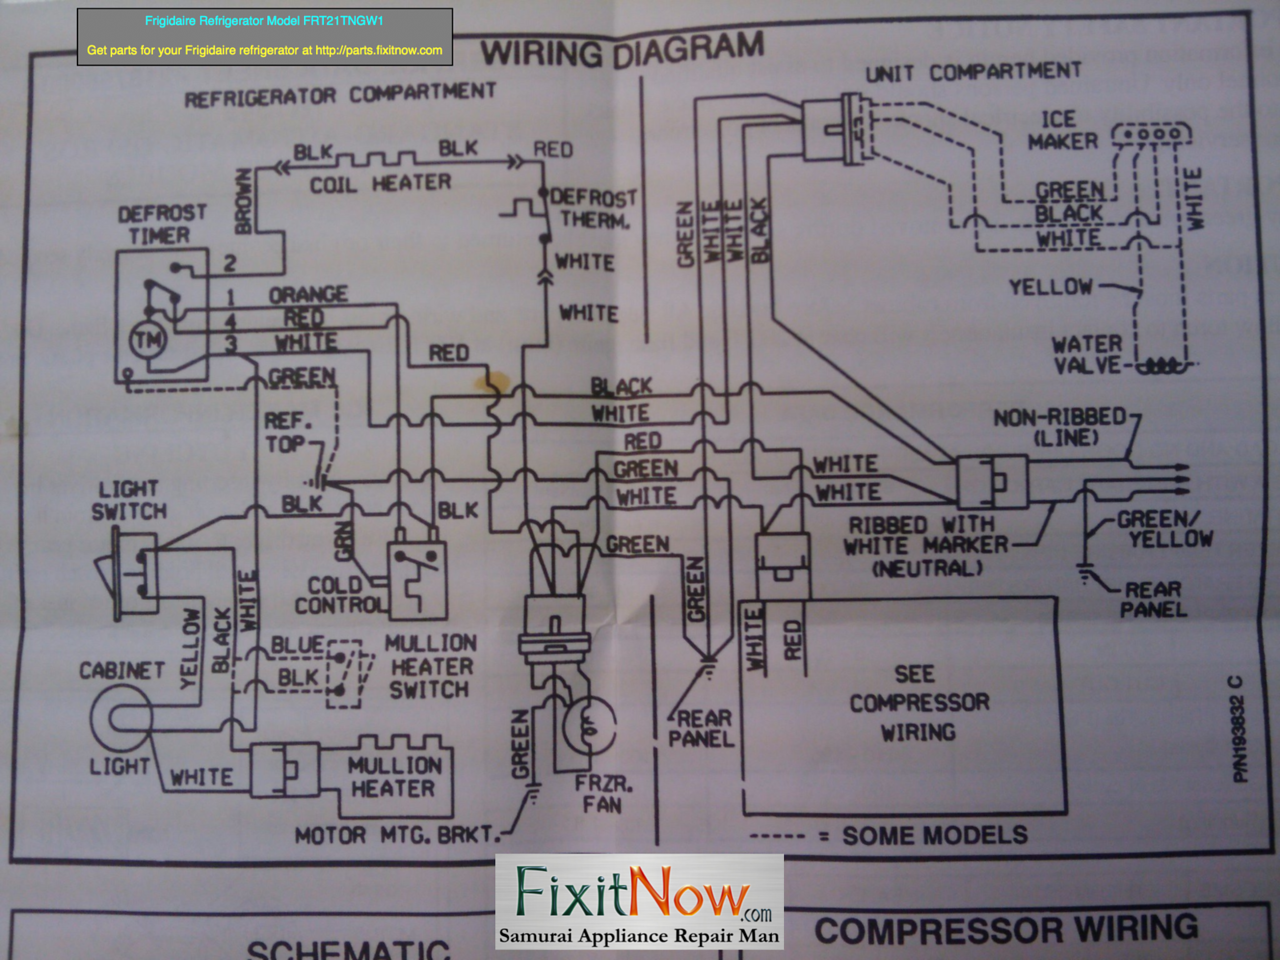 Wiring diagrams and schematics appliantology frigidaire refrigerator model frt21tngw1 wiring diagram asfbconference2016 Image collections